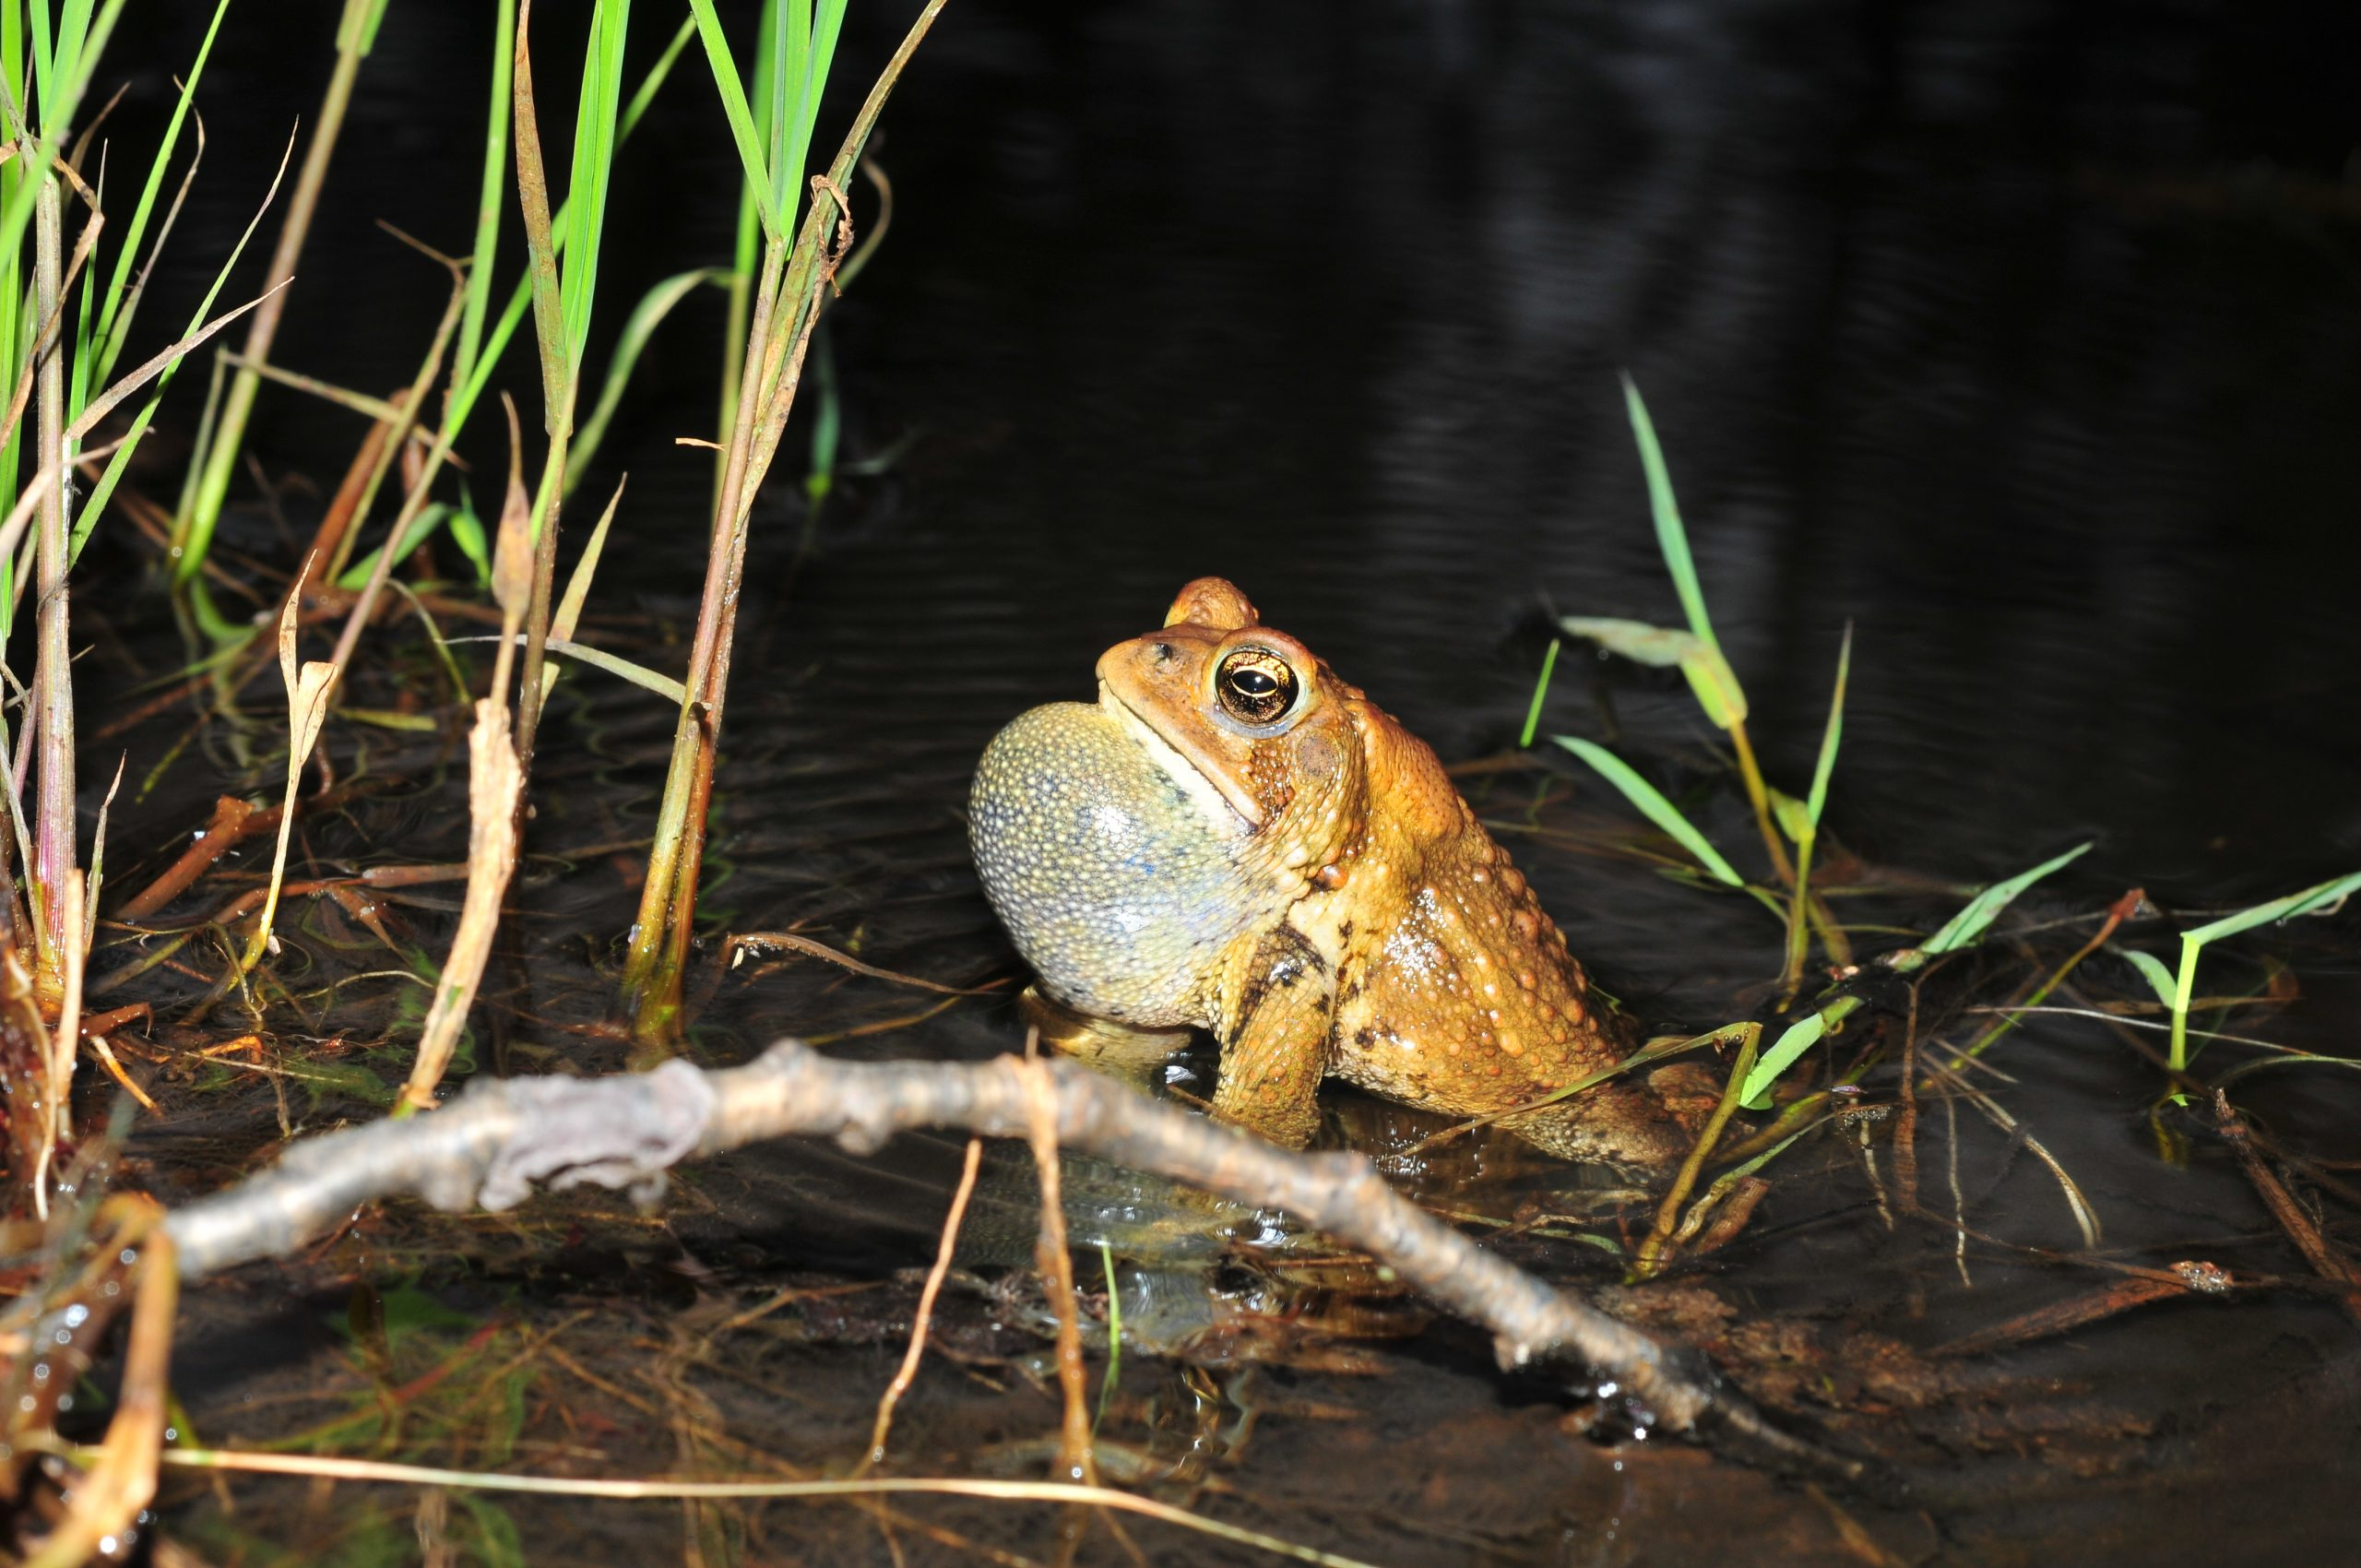 An American Toad stands in shallow water